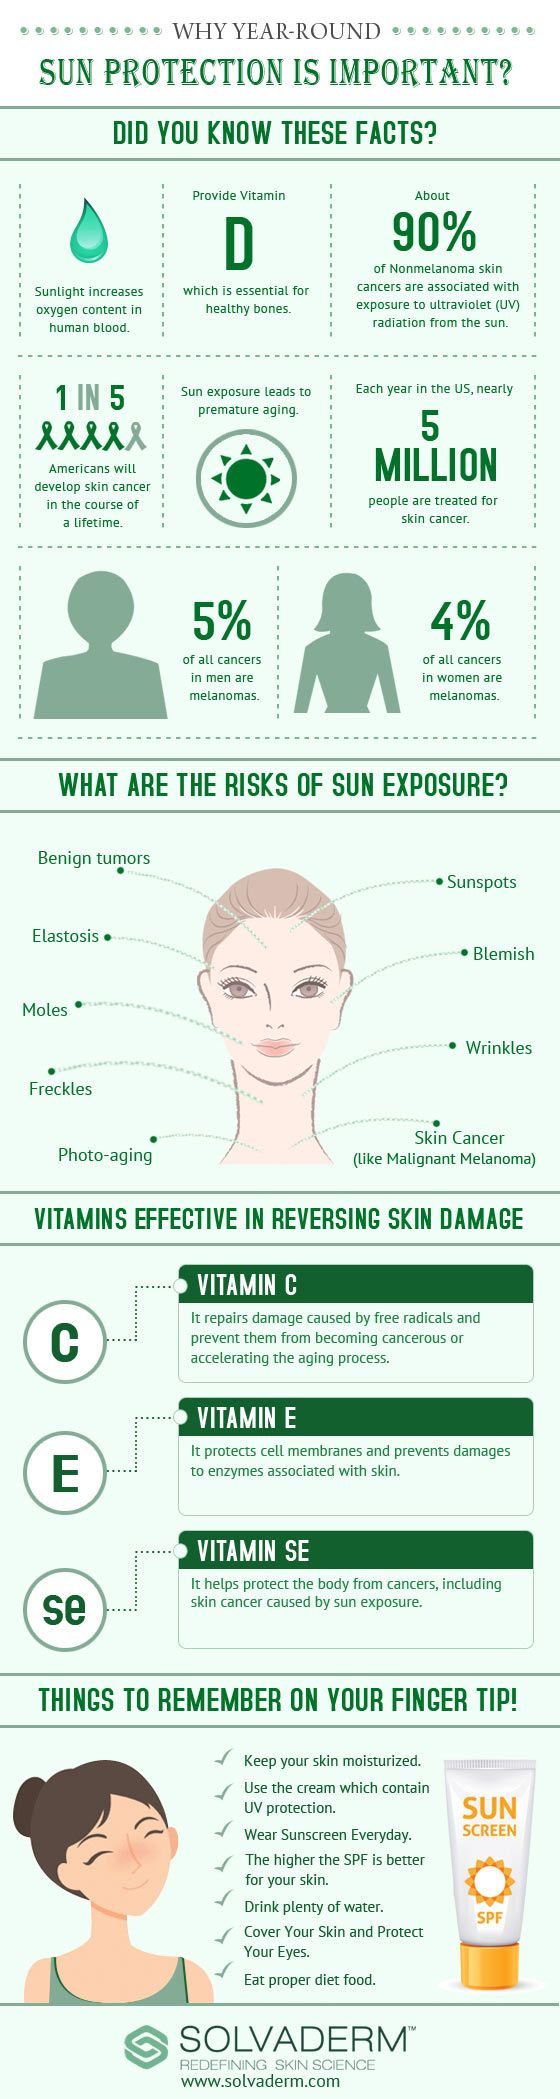 This pin shows the facts and risks of sun exposure. This image also explains the good in a little bit of sun light such as vitamin D and oxygen in our bodies.